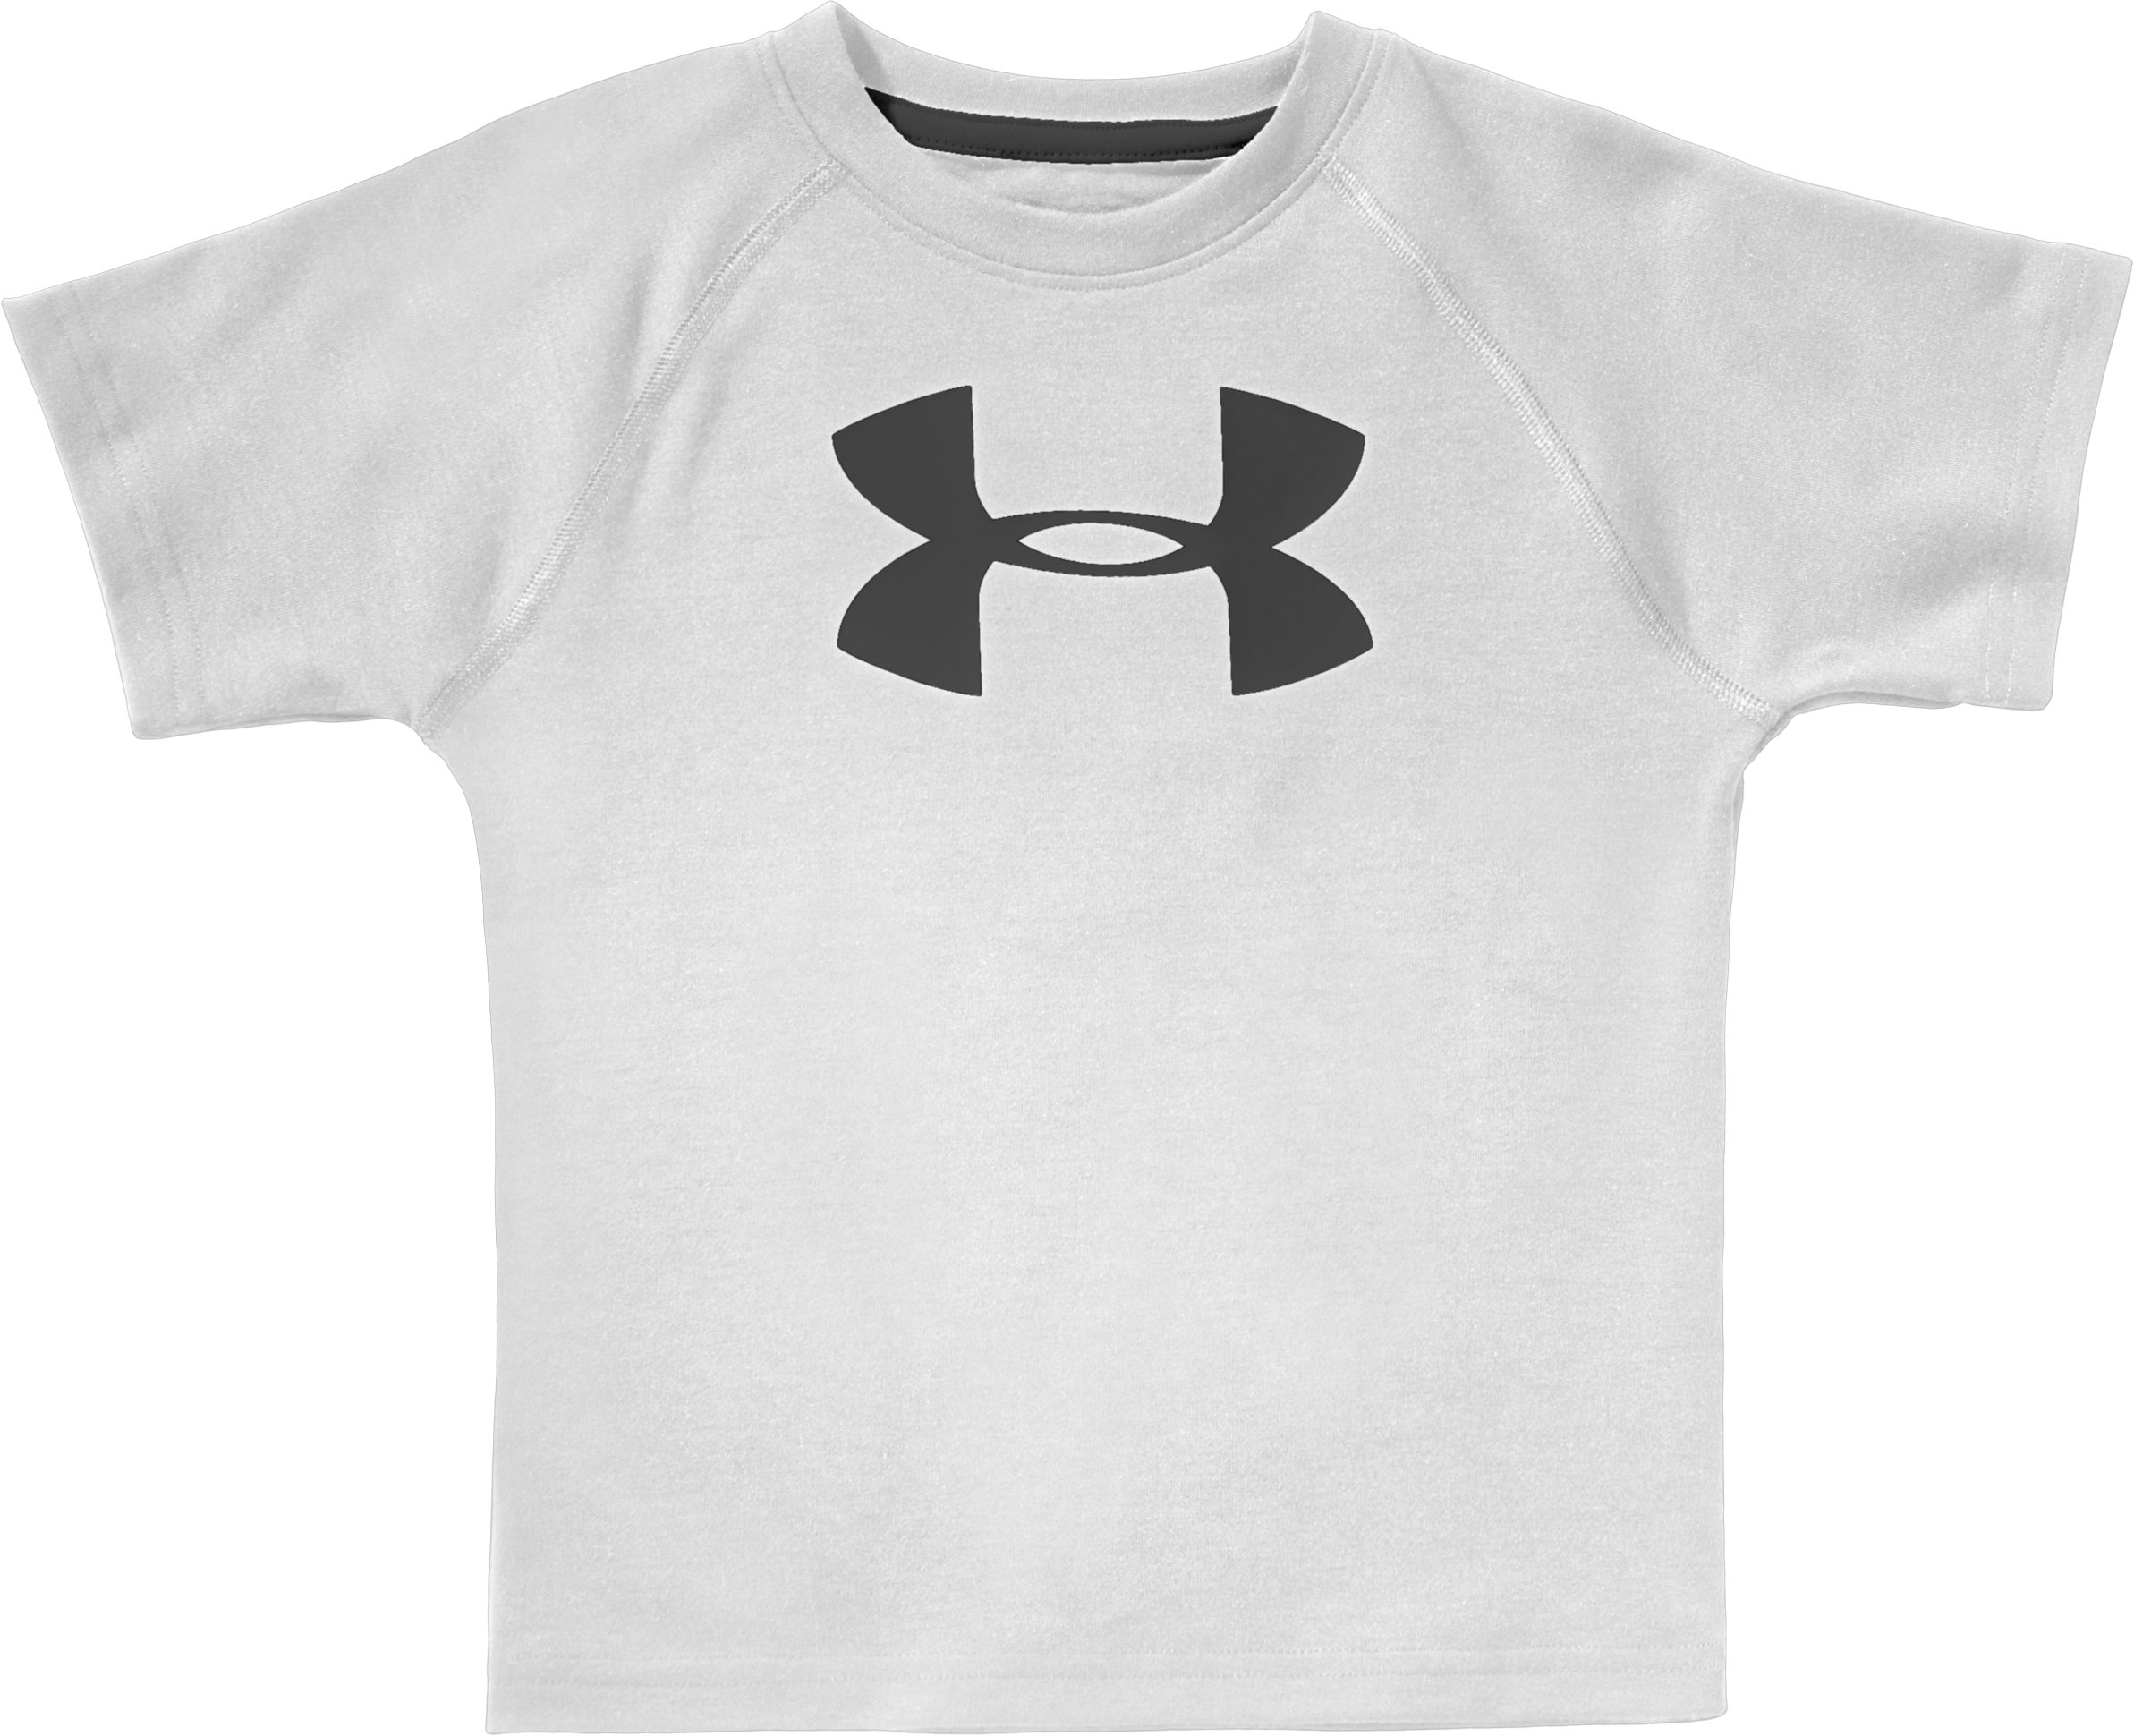 Boys' 4-7 UA Tech™ Big Logo Short Sleeve T-Shirt, White